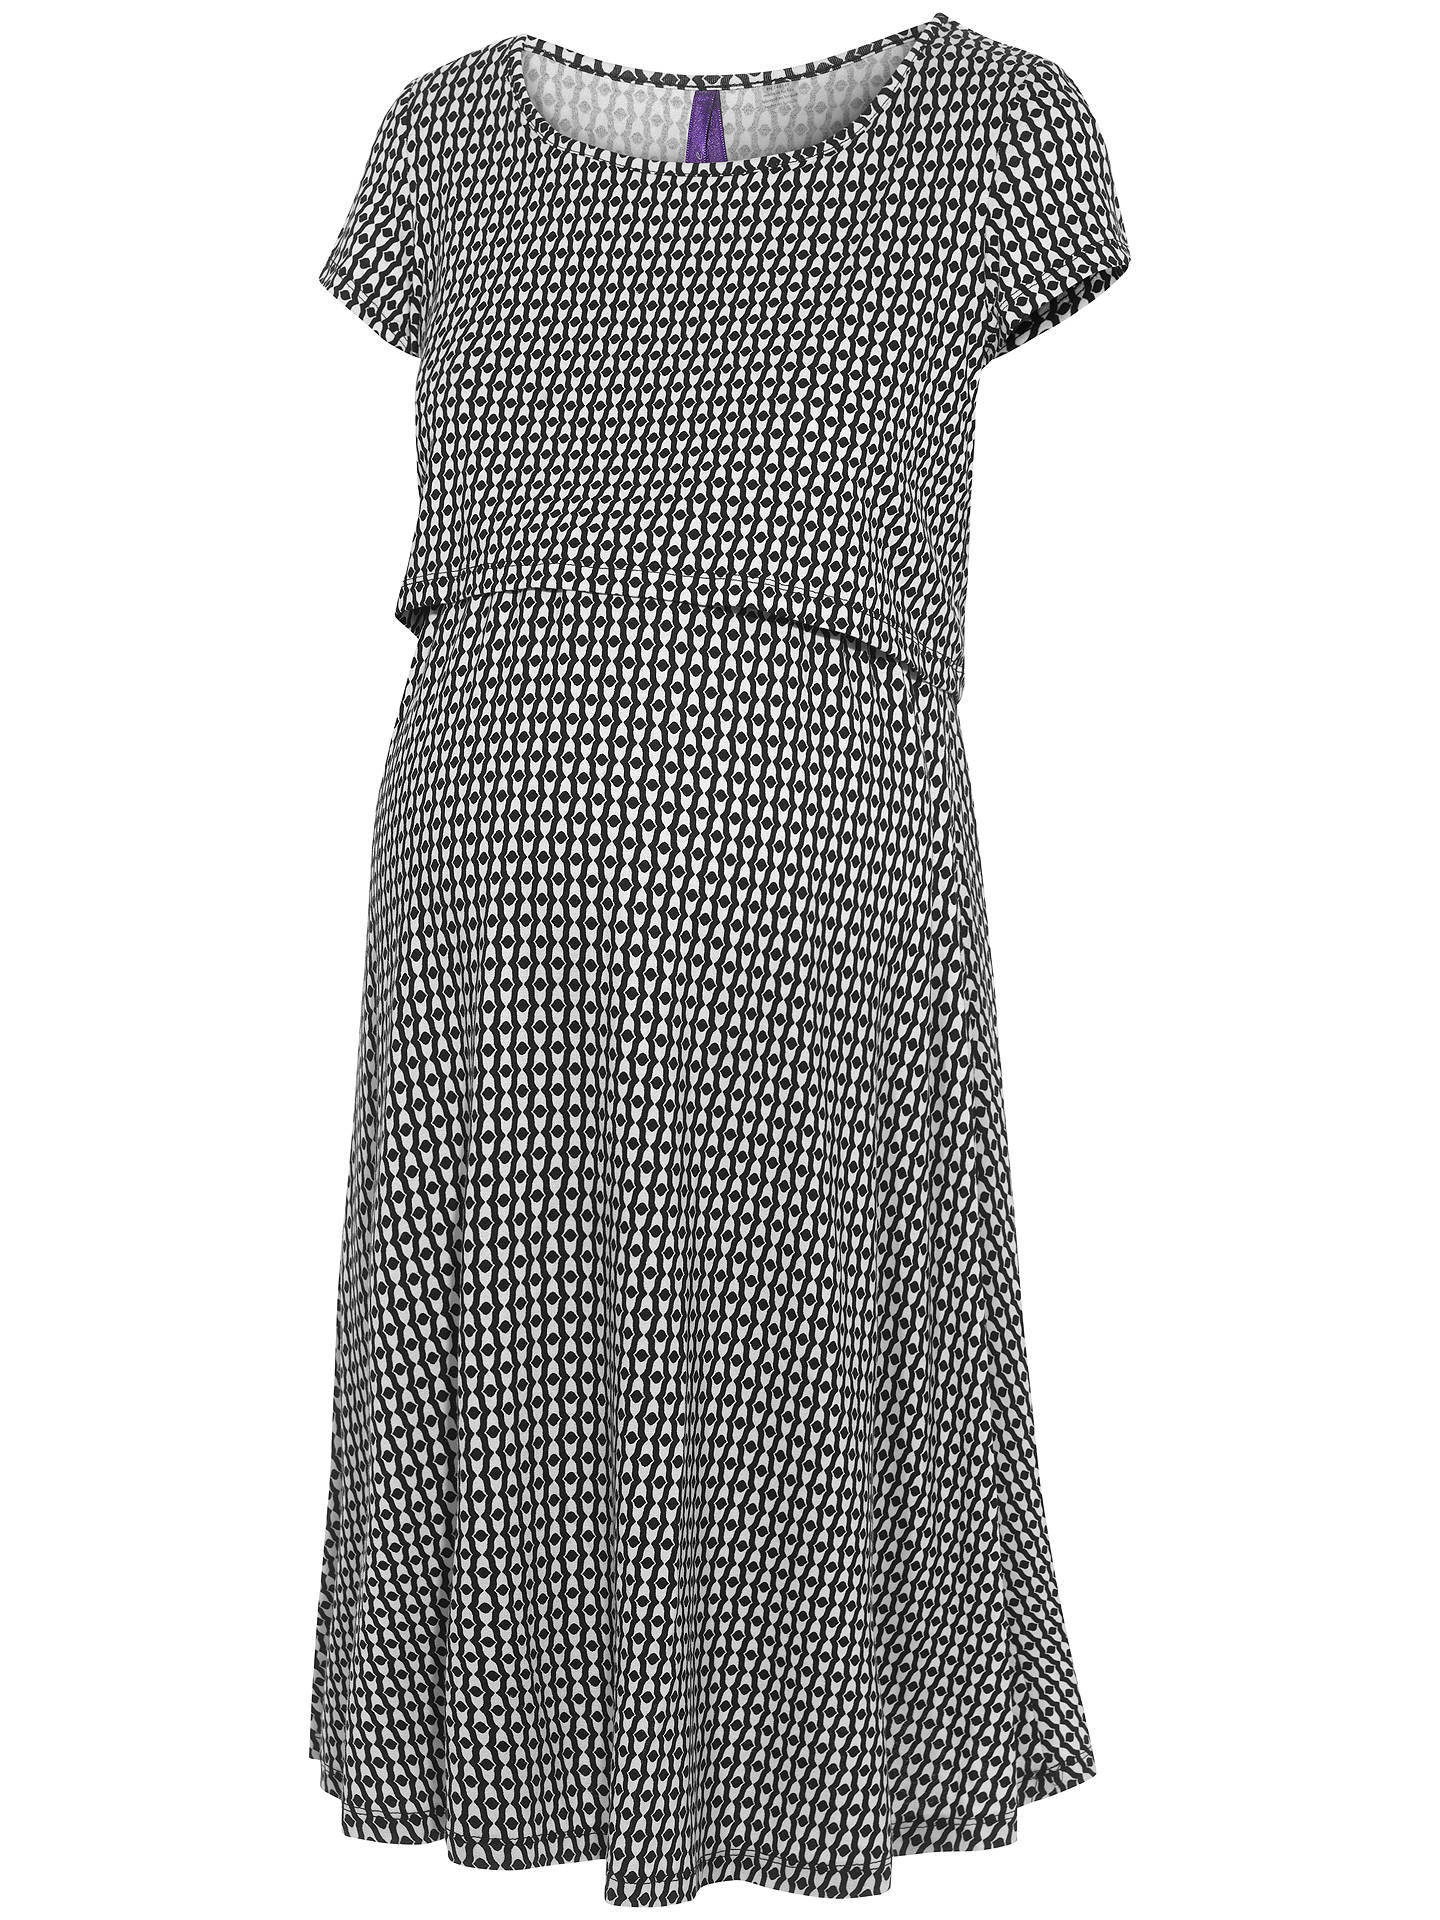 BuySéraphine Marissa Maternity Nursing Dress, Black/White, 8 Online at johnlewis.com